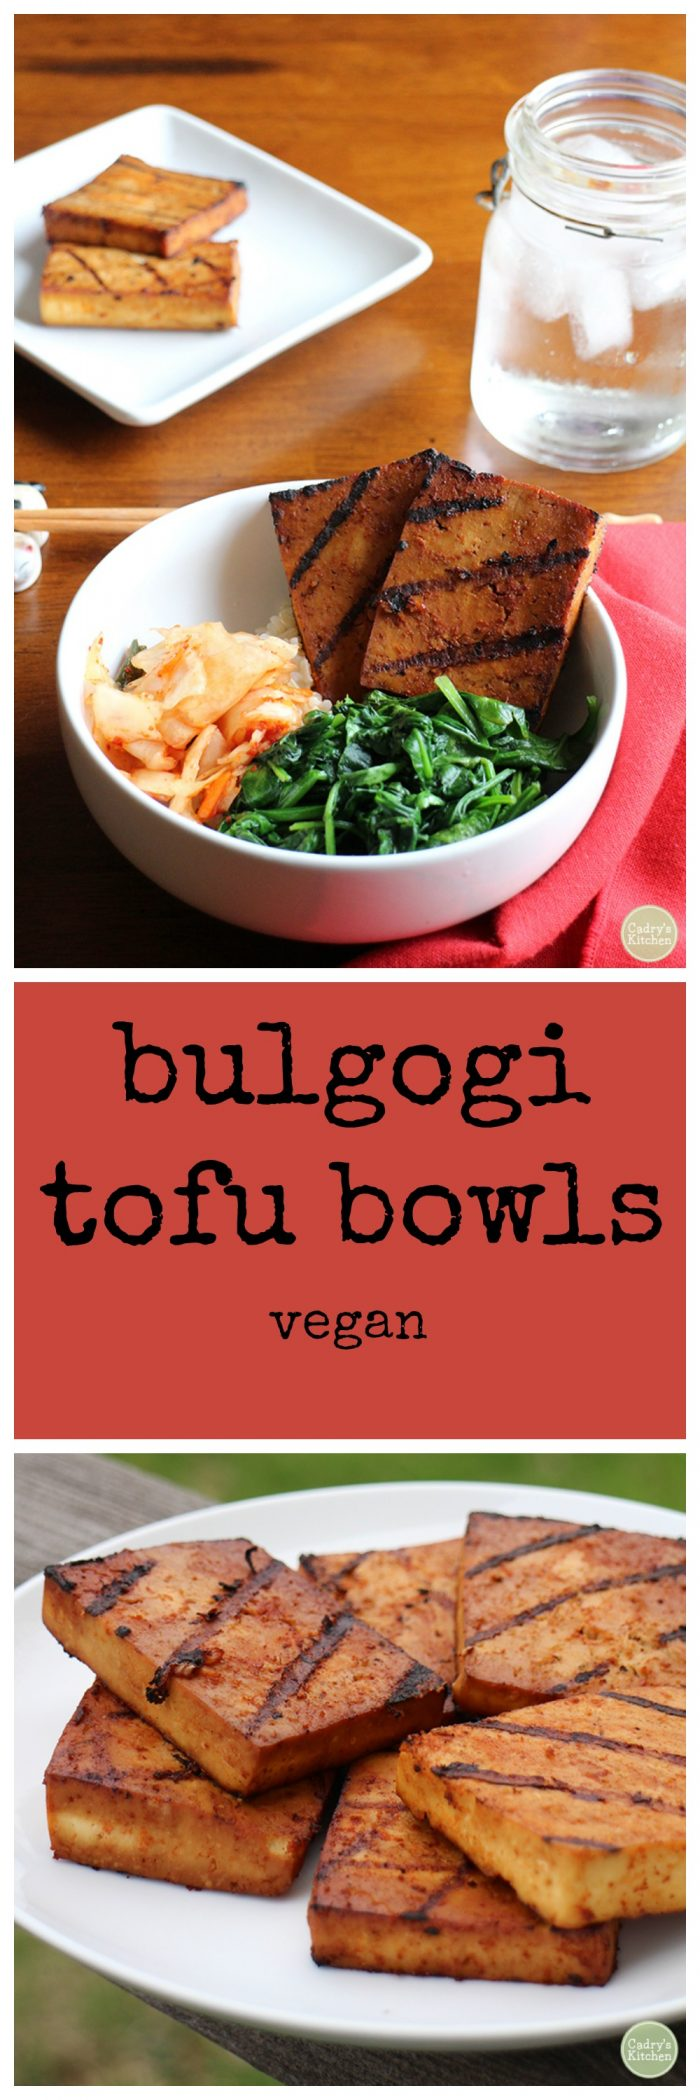 Bulgogi tofu bowls - Korean-inspired vegan bowls with rice, kimchi, sauteed spinach & bulgogi tofu | cadryskitchen.com